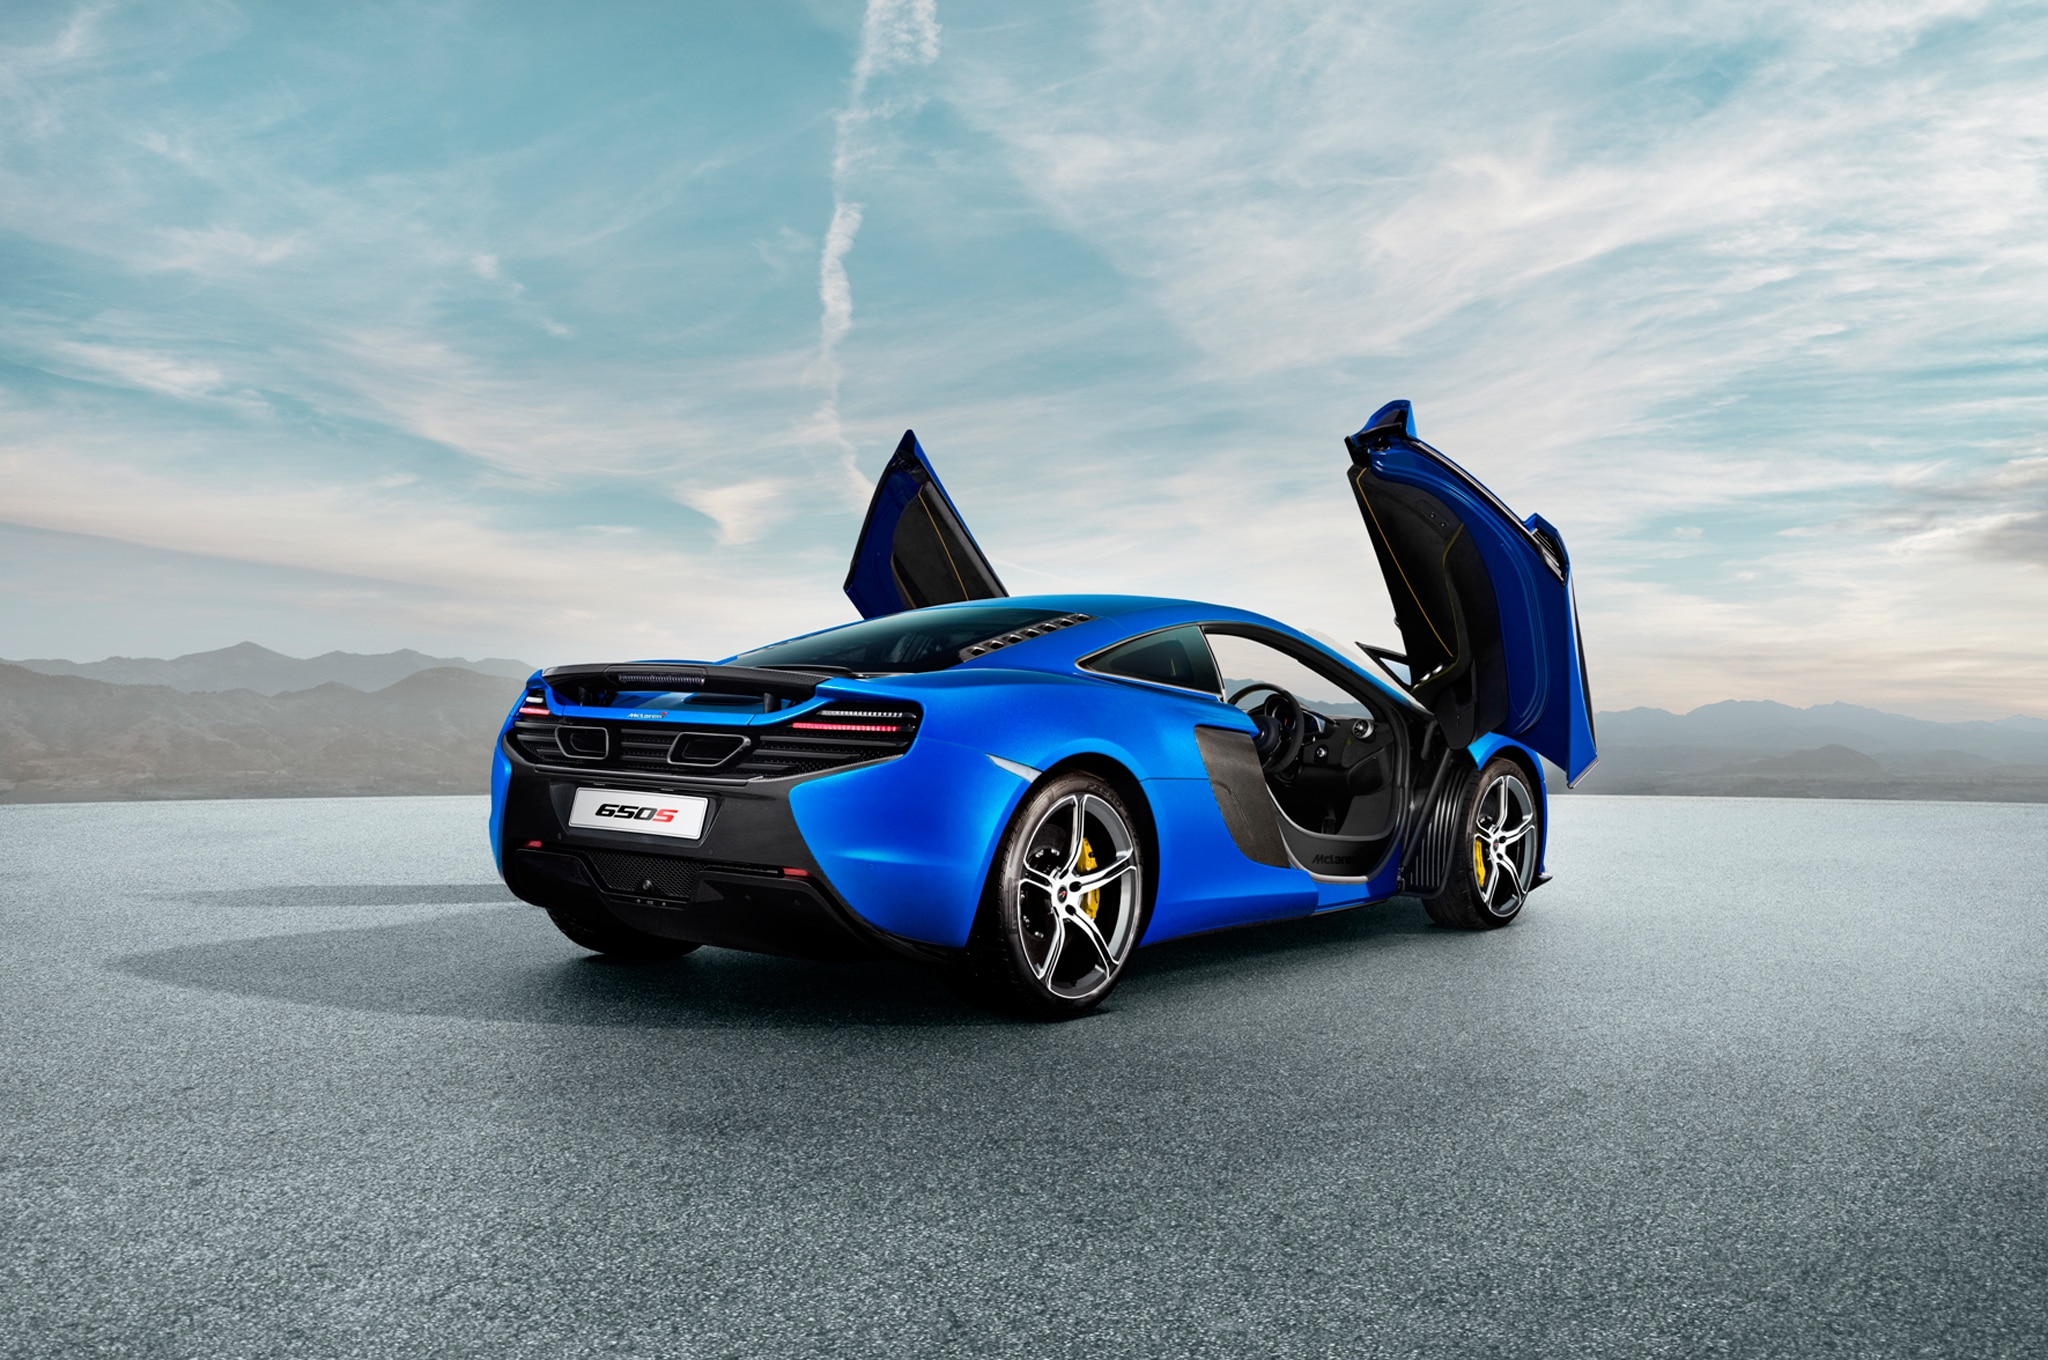 2015 Mclaren 650s Coupe Rear Three Quarter2